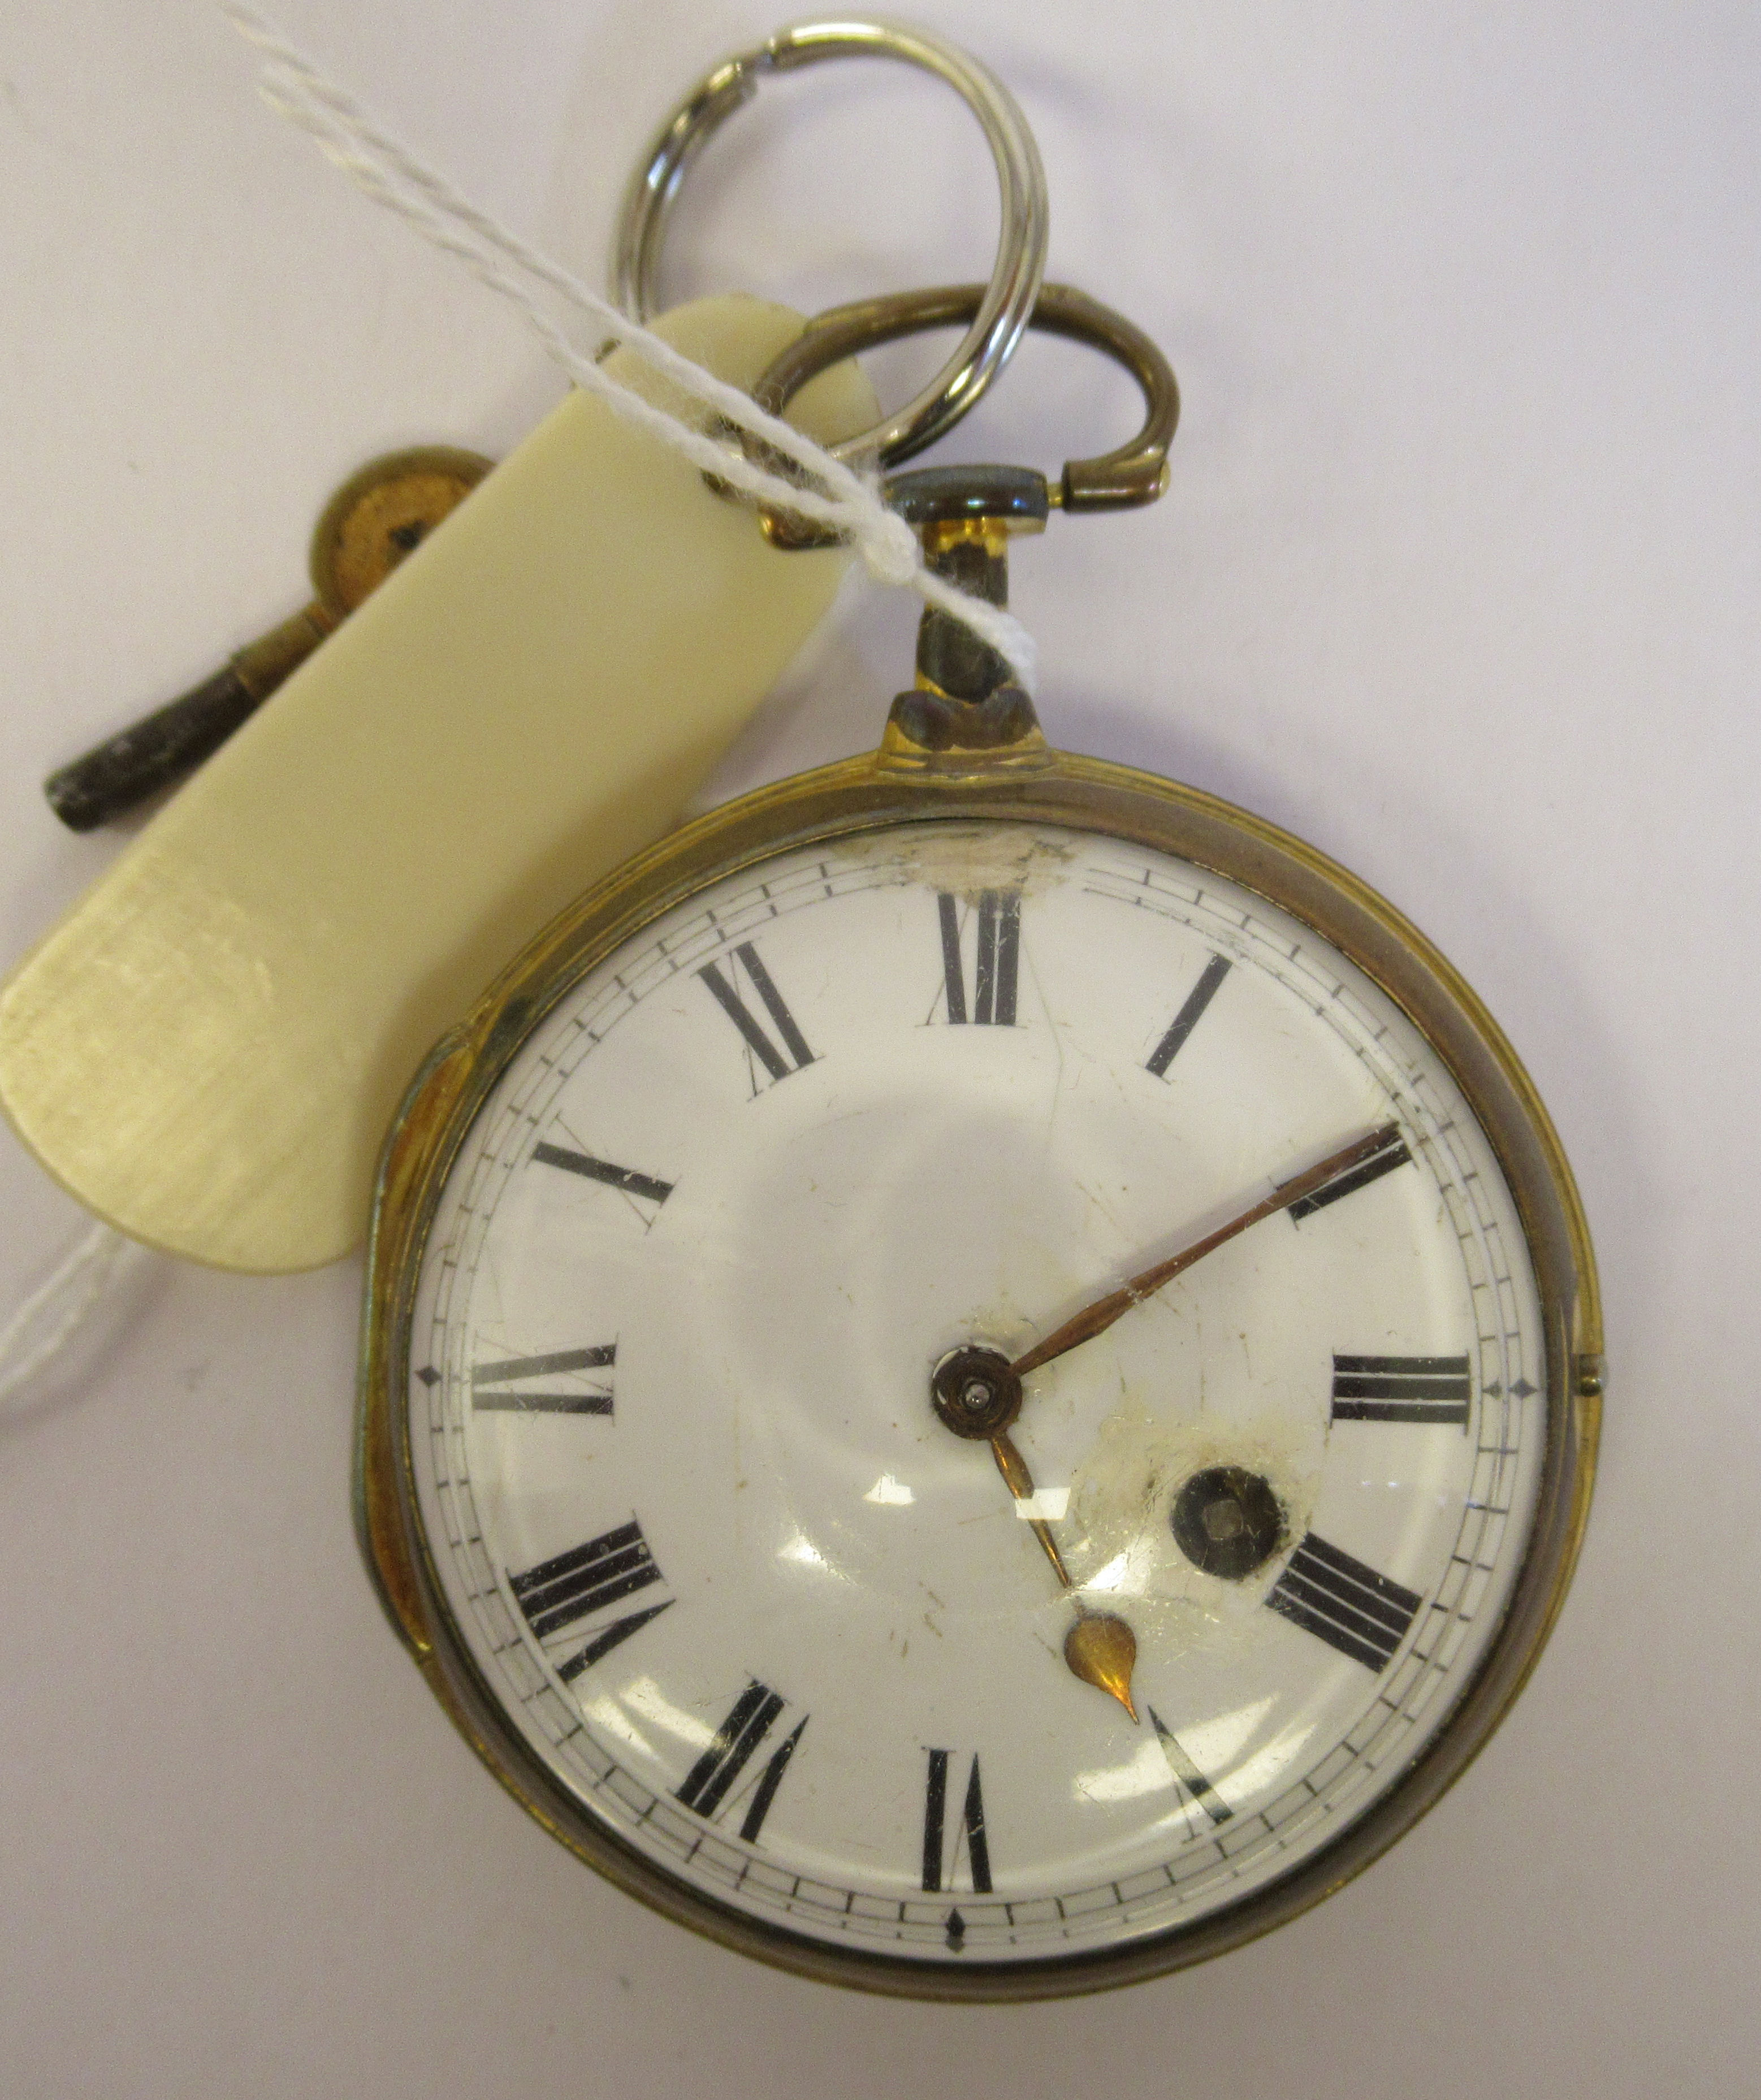 A 19thC Irish gilt metal cased pocket watch with a dimpled glass, the fusee movement inscribed * O'